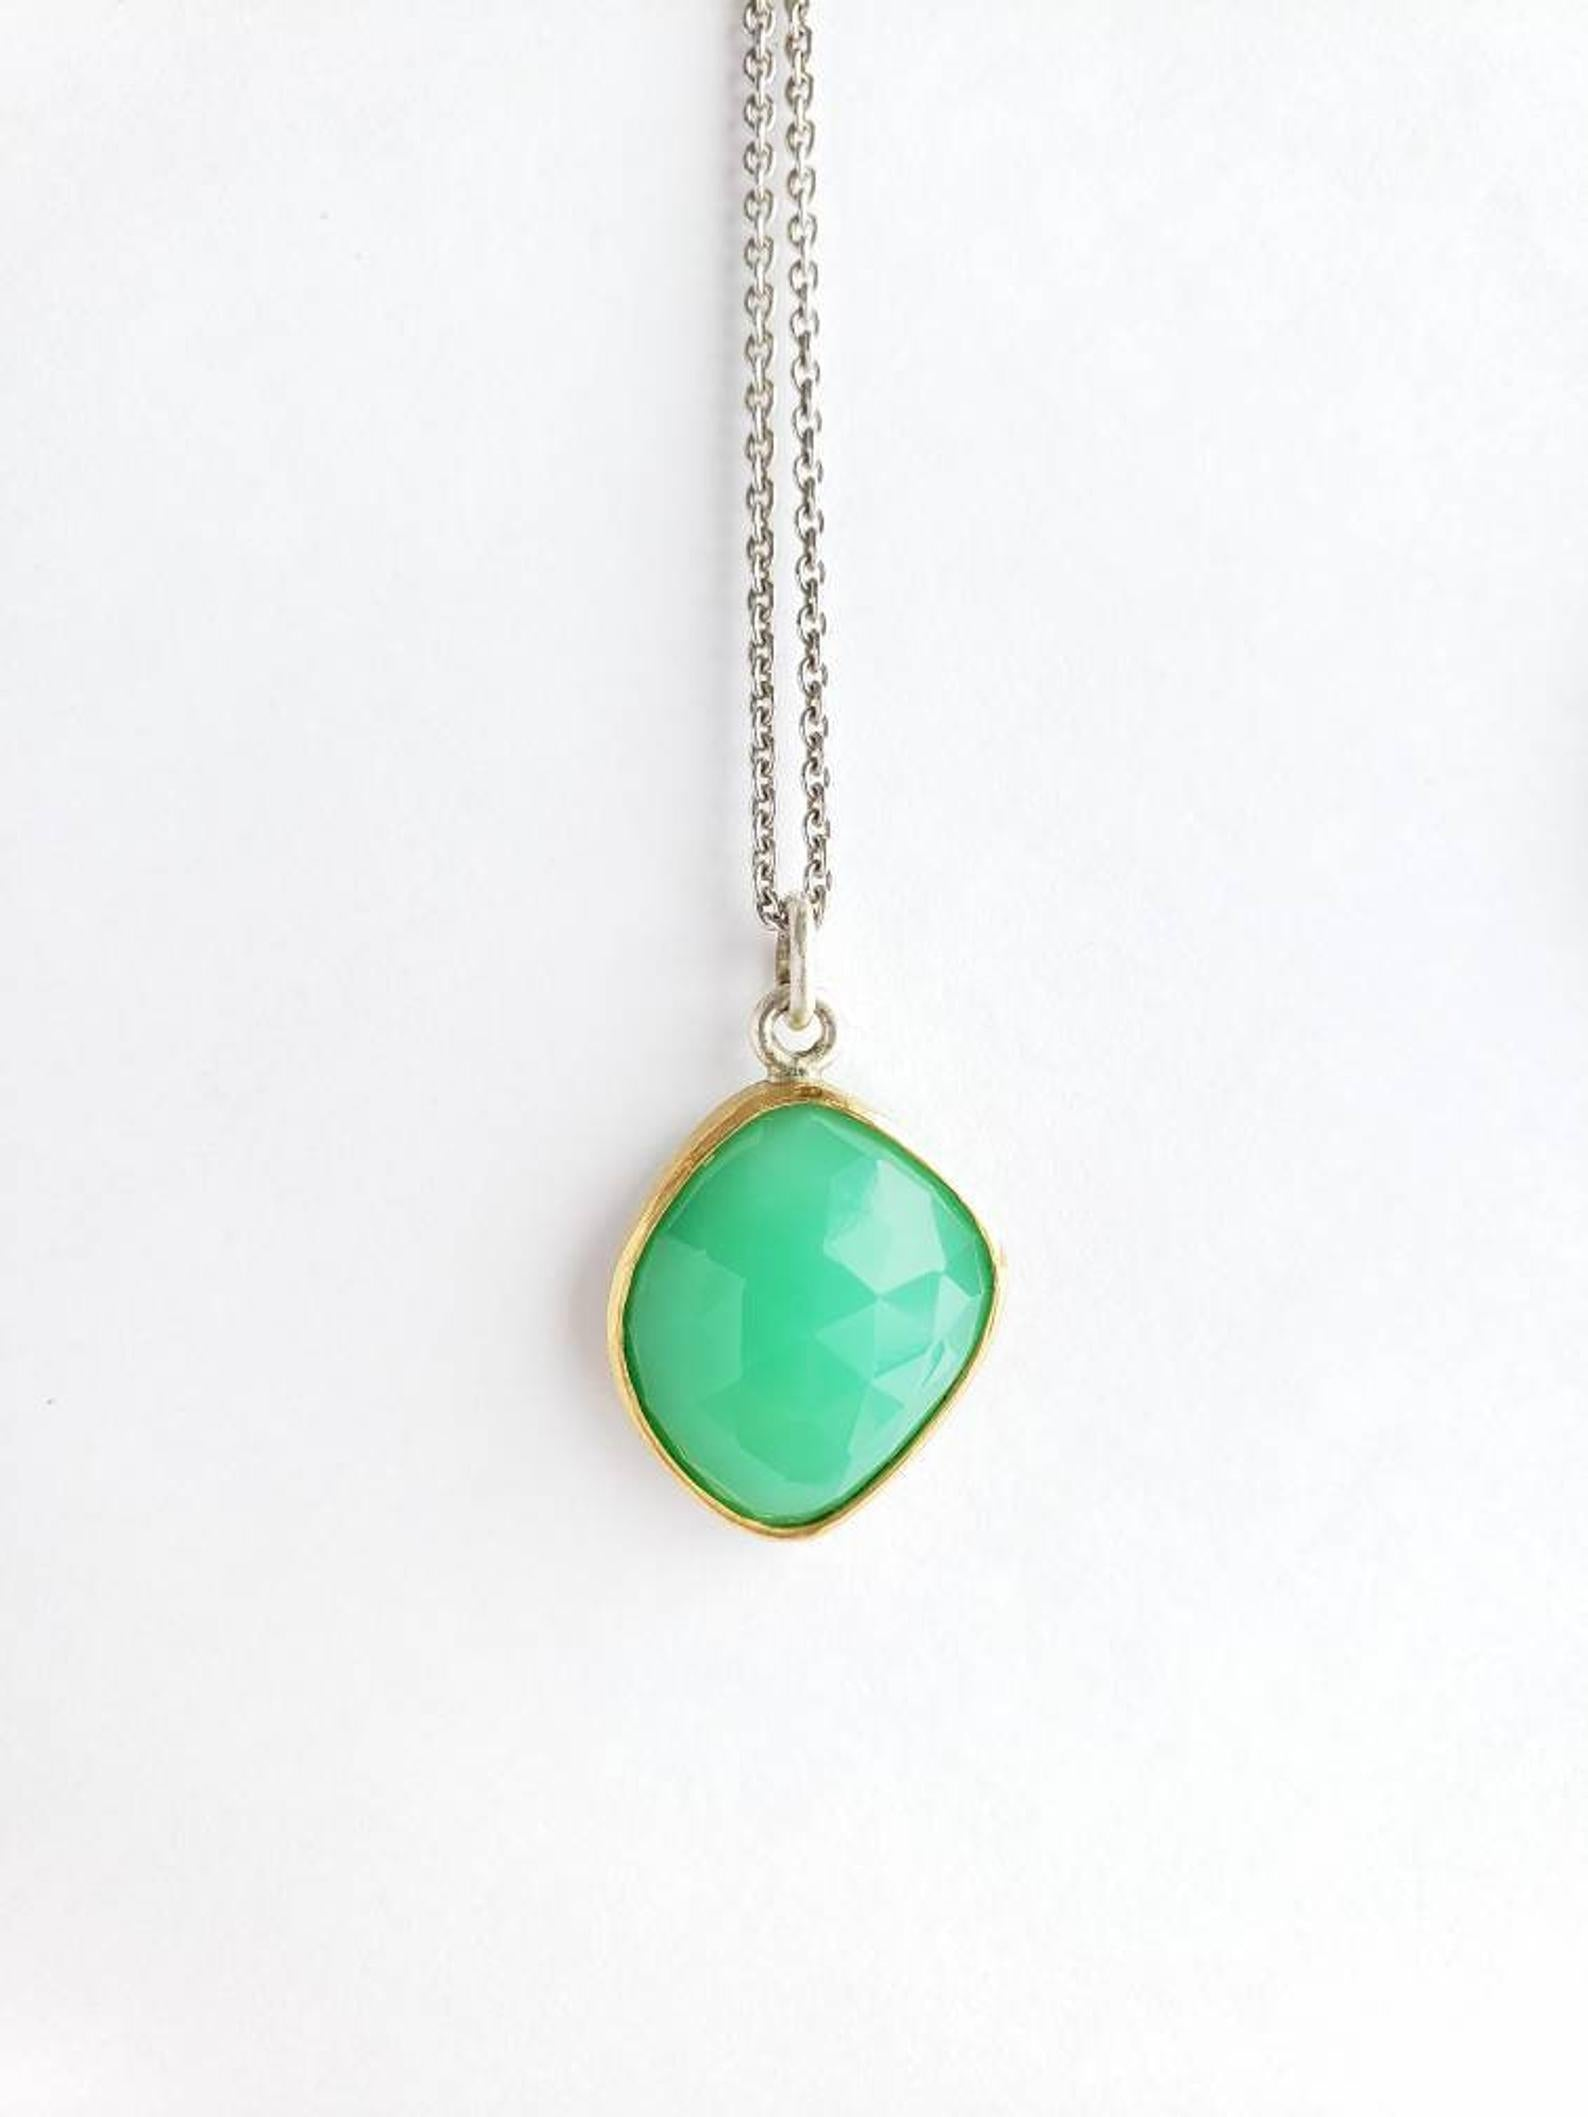 Chrysoprase Pendant , Set in 18k Gold, Sterling Silver, 4 Hearts